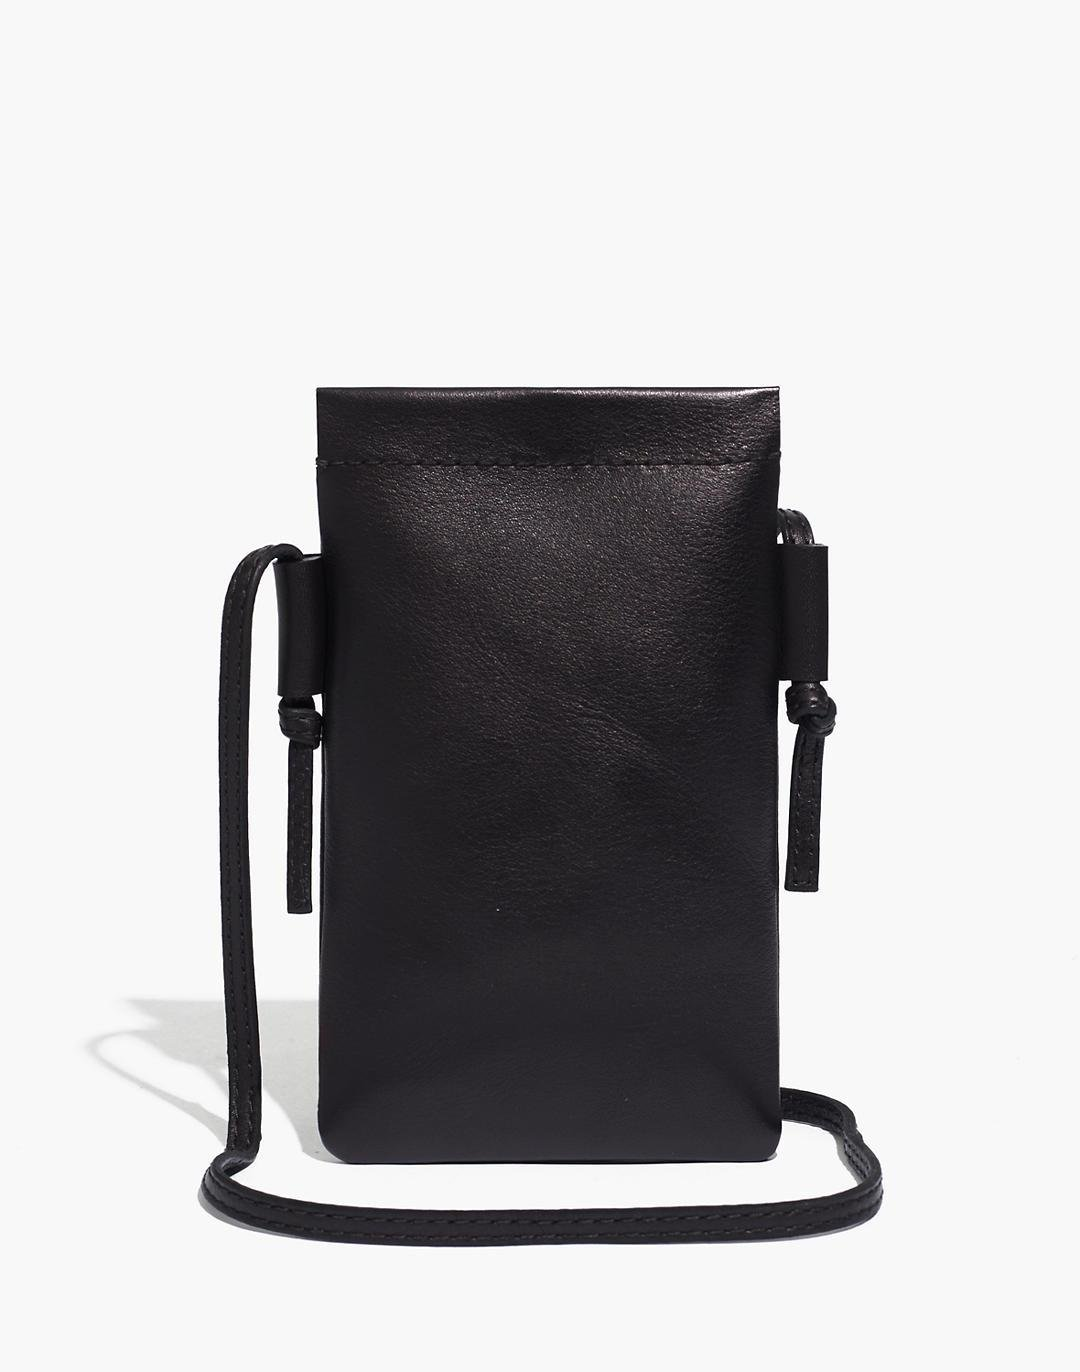 The Smartphone Crossbody Bag in Leather